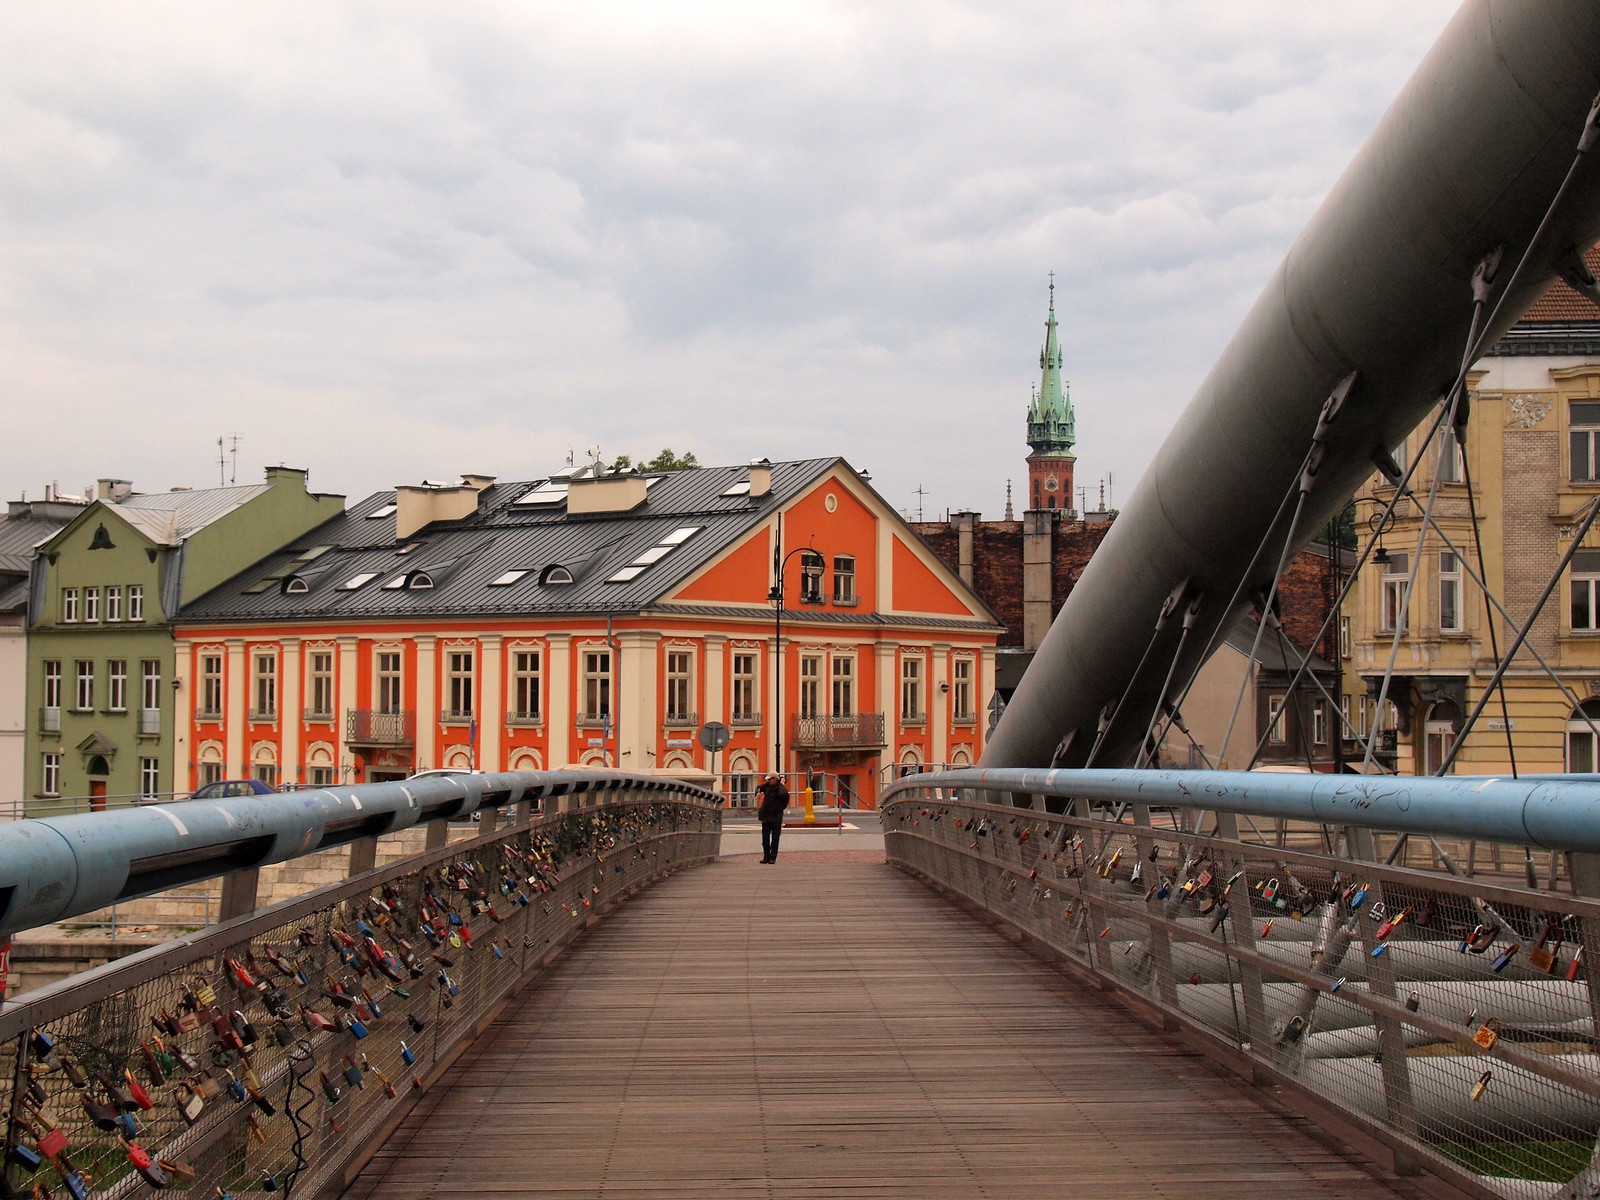 Lovers Bridge in Krakow, Poland